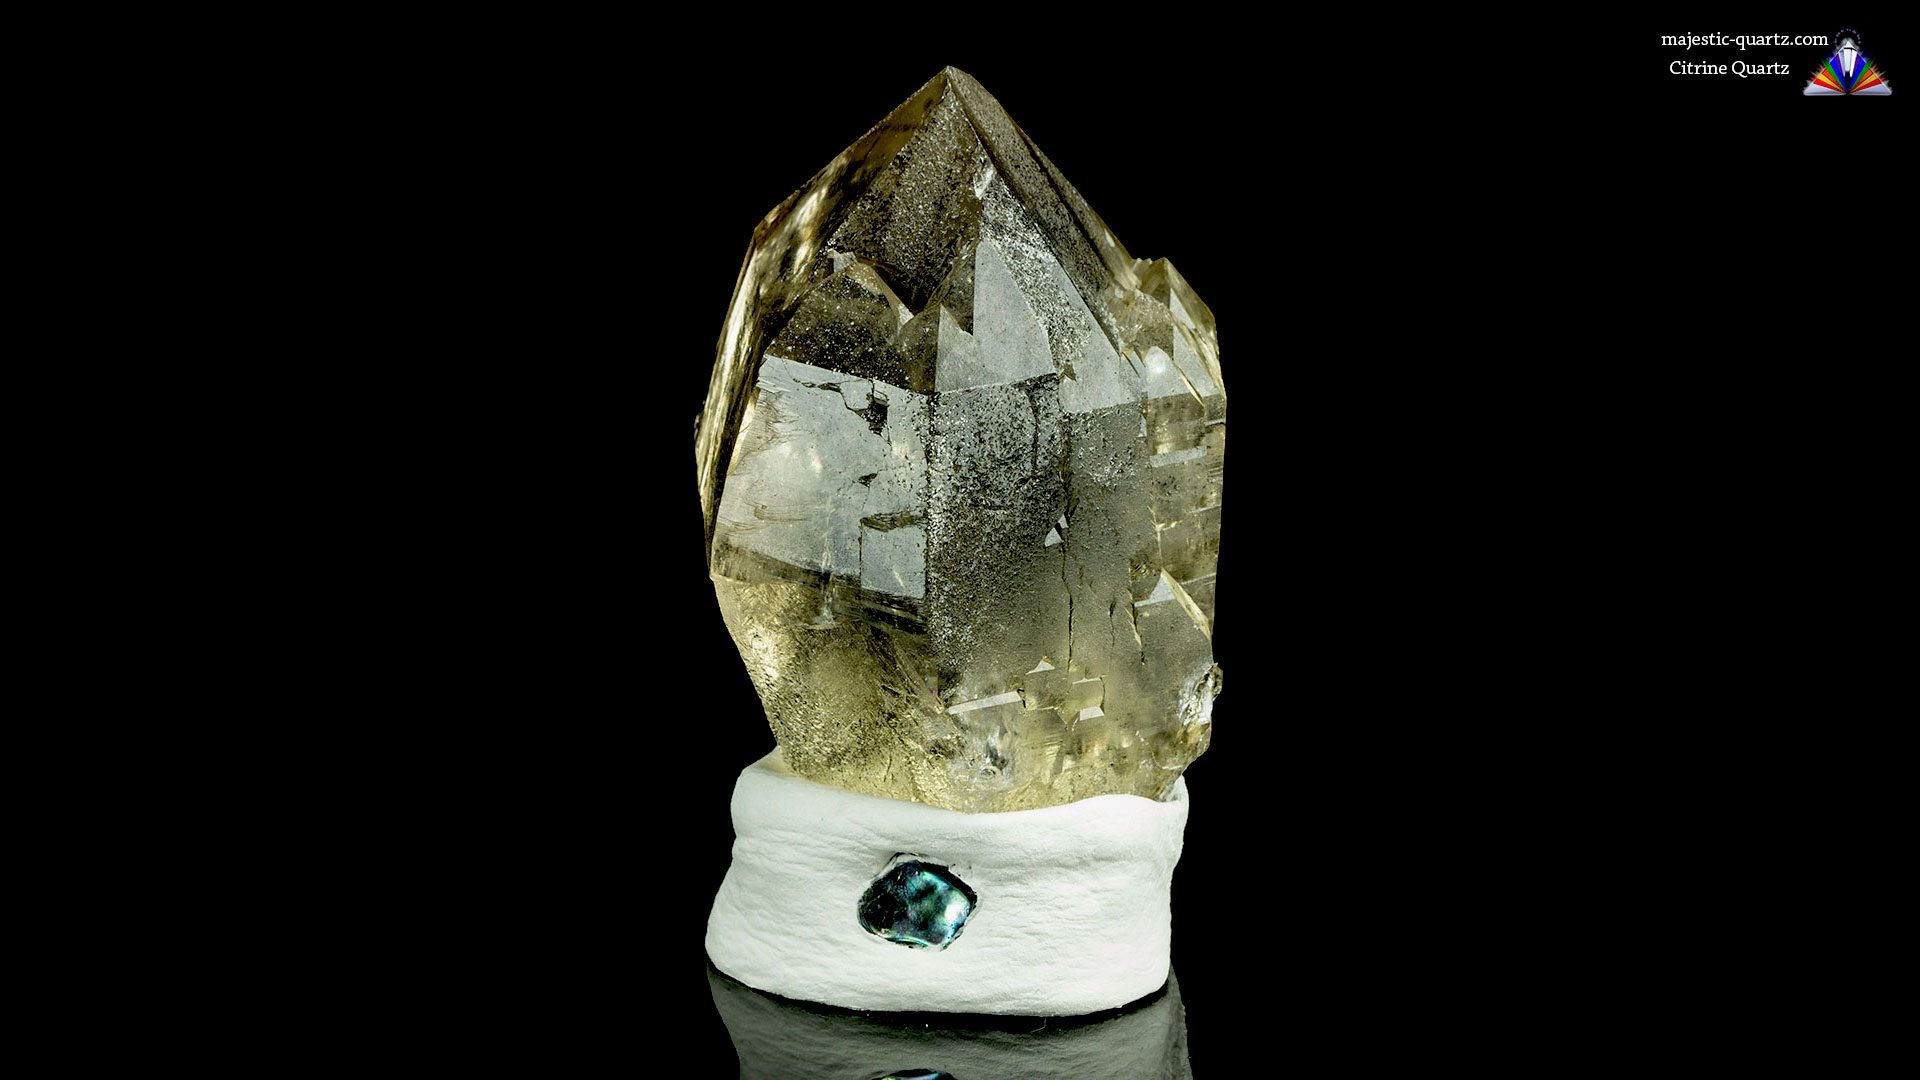 Citrine Quartz Properties and Meaning- Photograph by Anthony Bradford